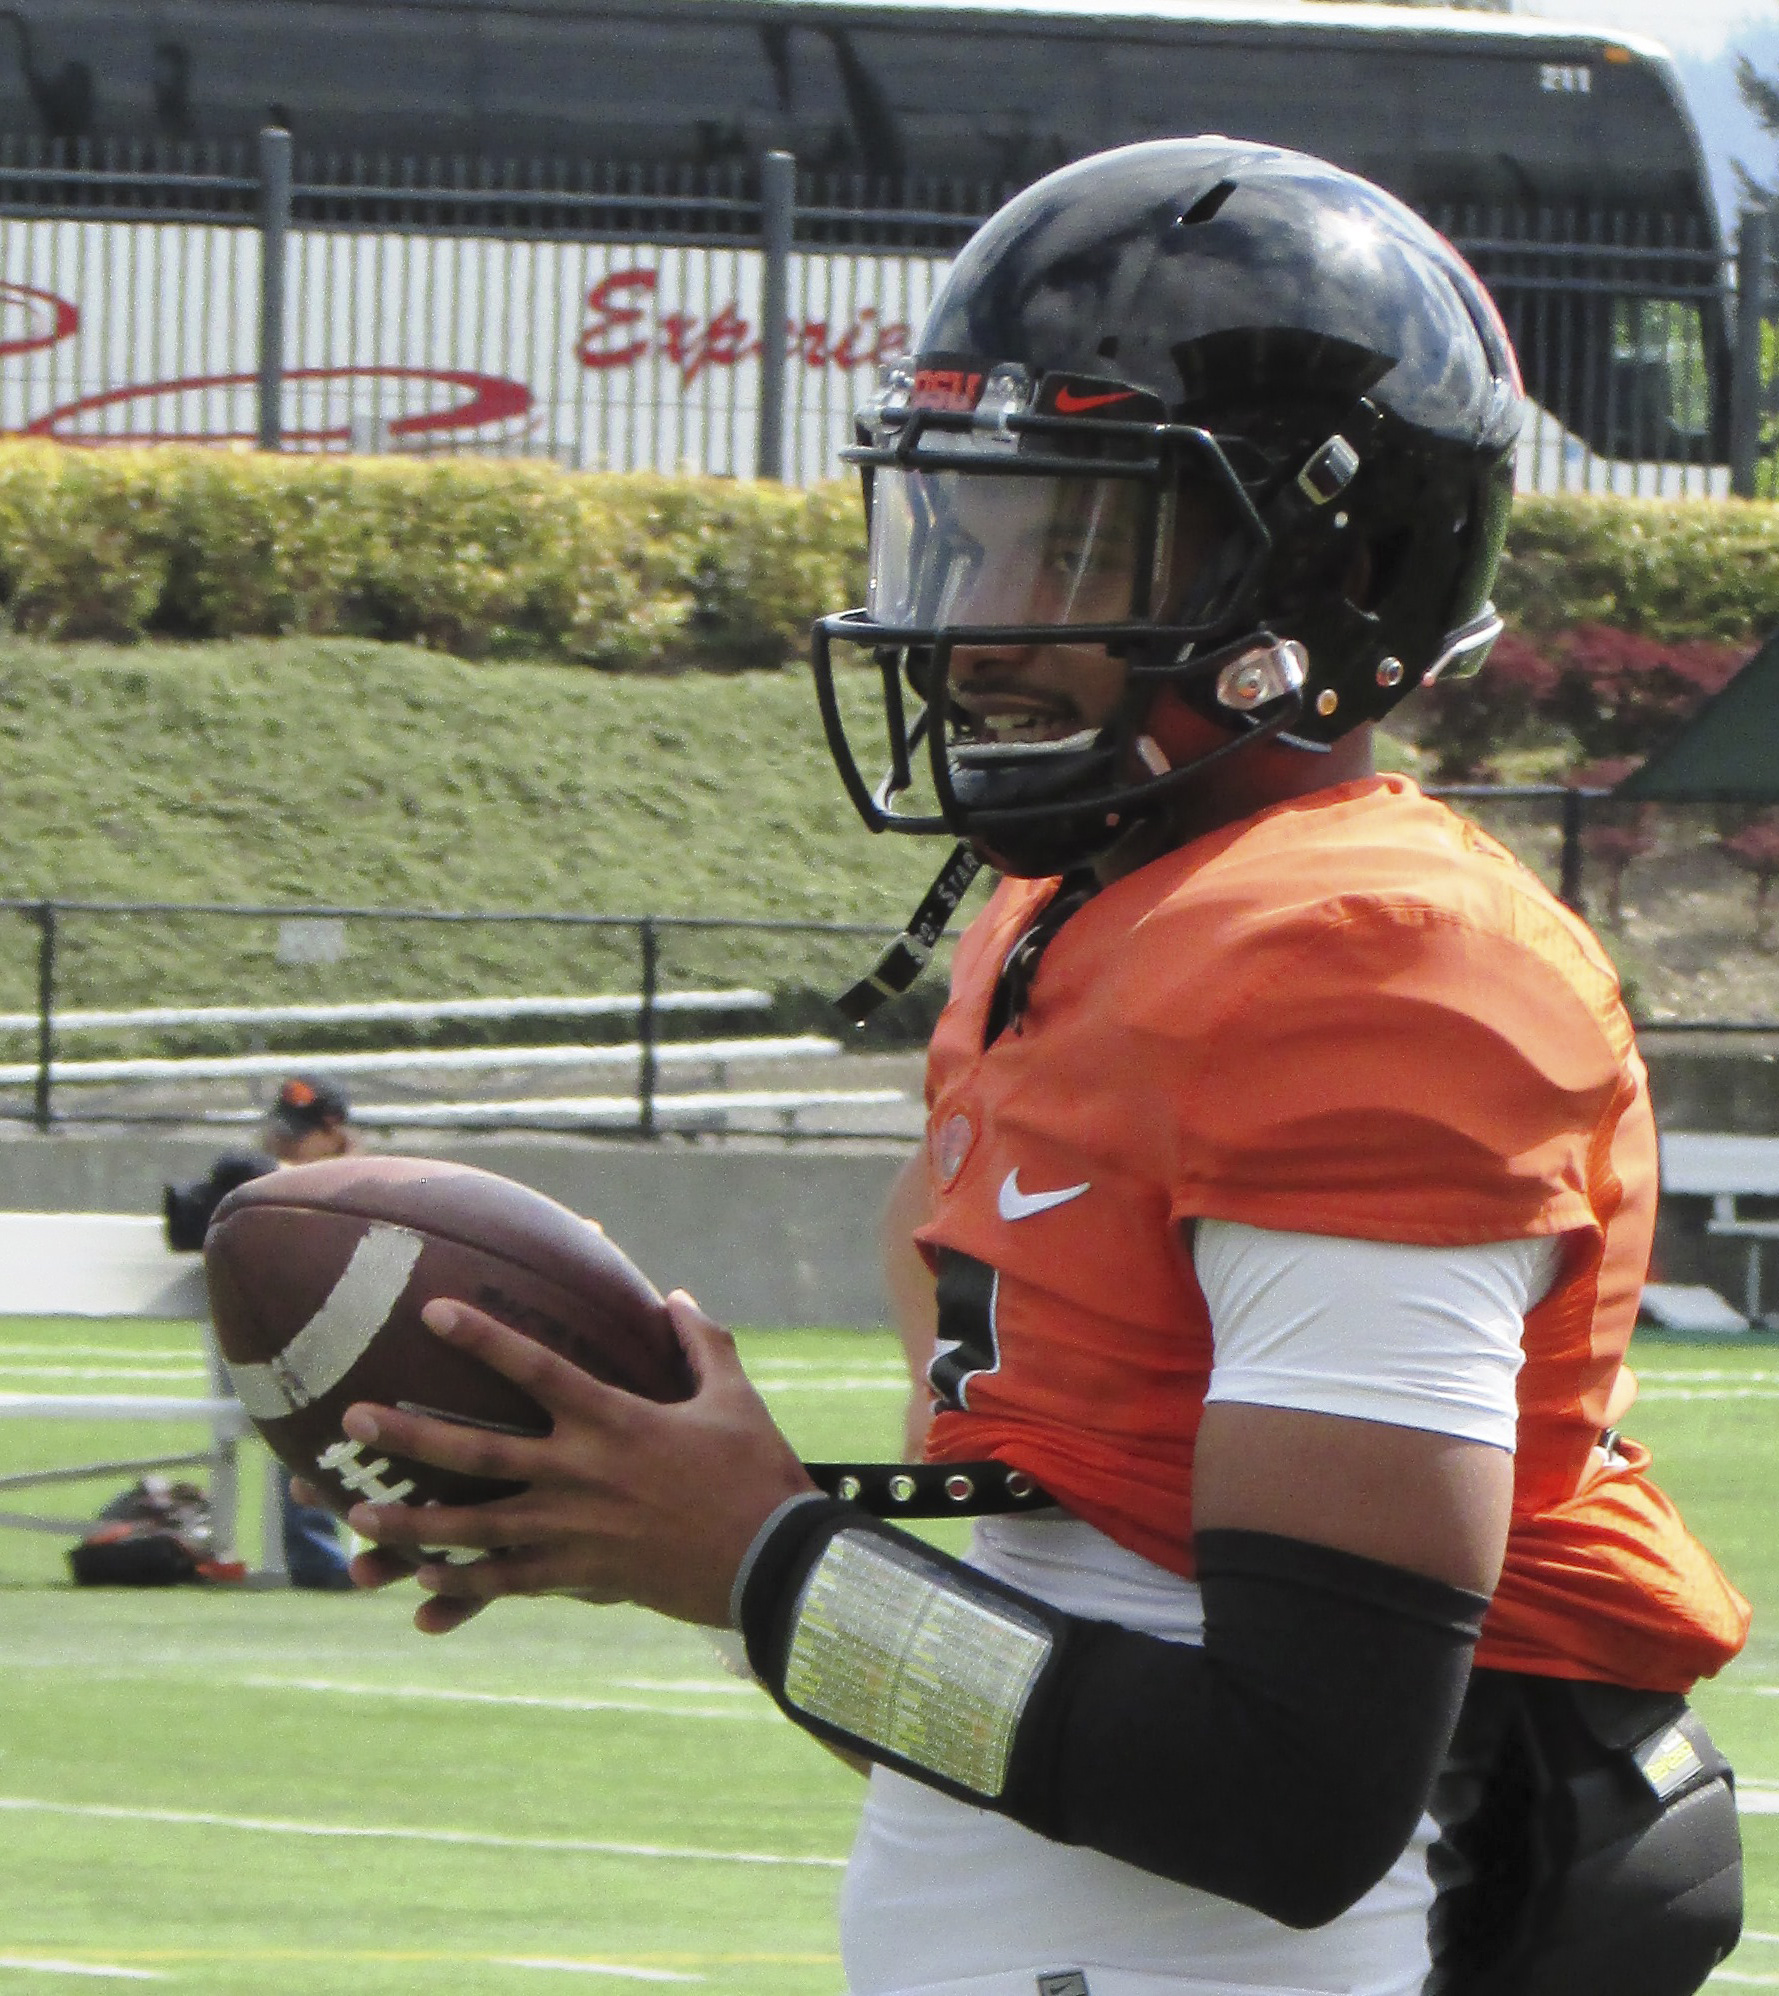 Oregon State quarterback Marcus McMaryion gets ready to pass the ball during the NCAA college football team's scrimmage at Hillsboro Stadium in Hillsboro, Ore., Saturday, April 9, 2016. (AP Photo/Anne M. Peterson)